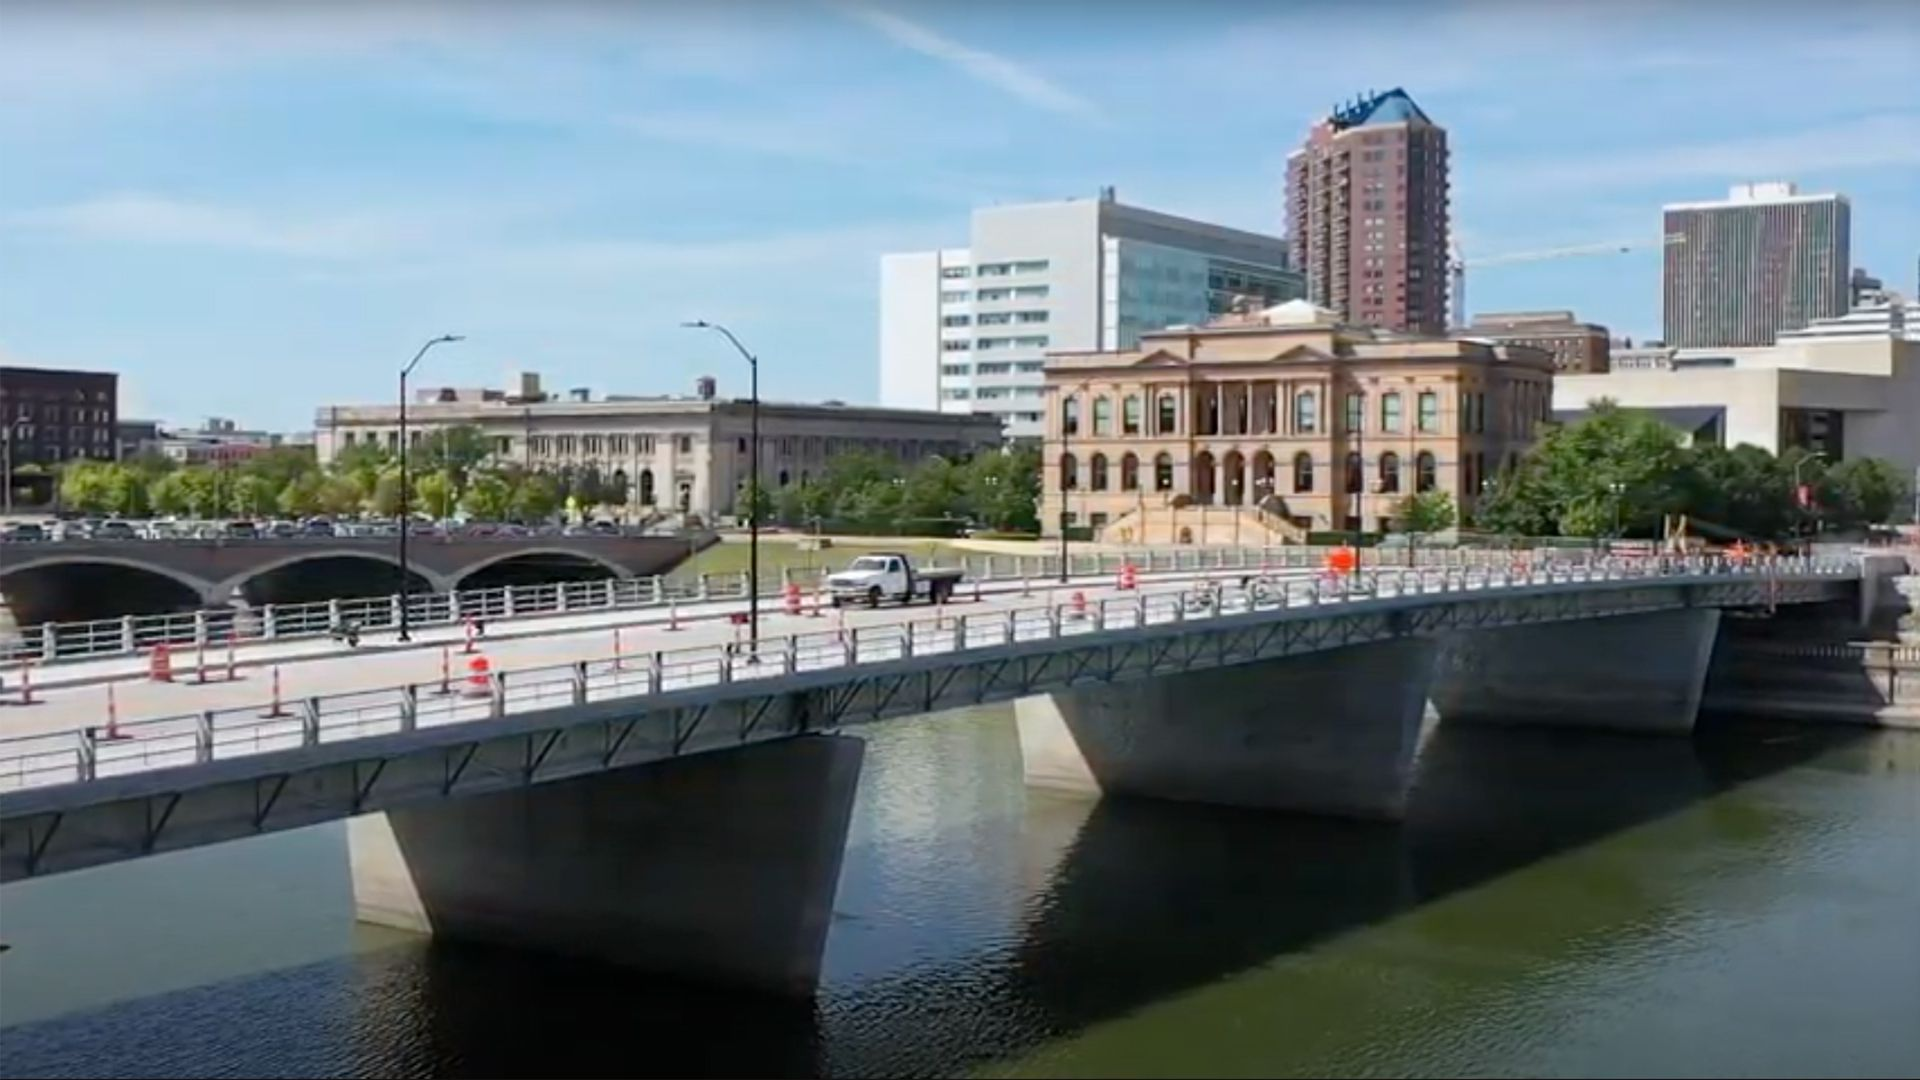 An illustration of the Locust Street Bridge replacement project in Des Moines.